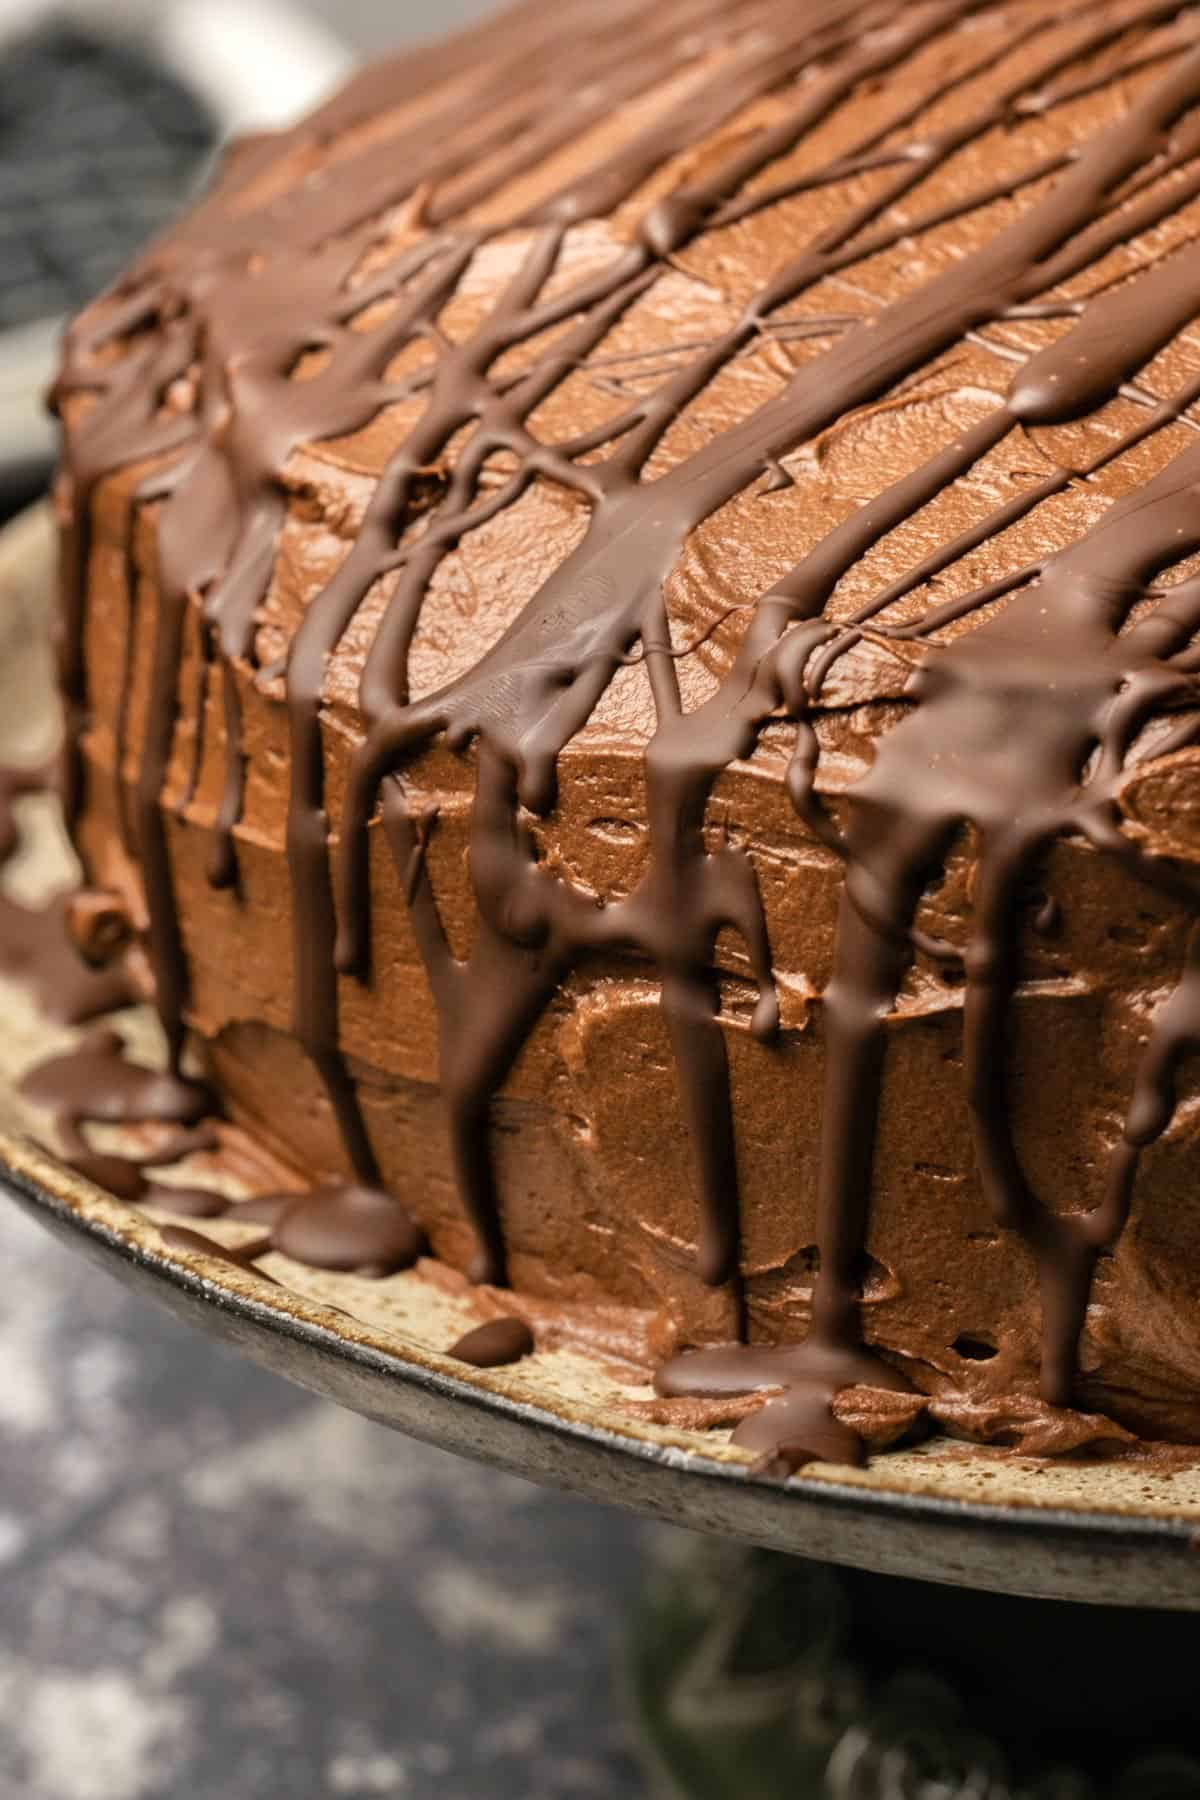 Chocolate buttercream frosting and chocolate decoration on a chocolate cake.